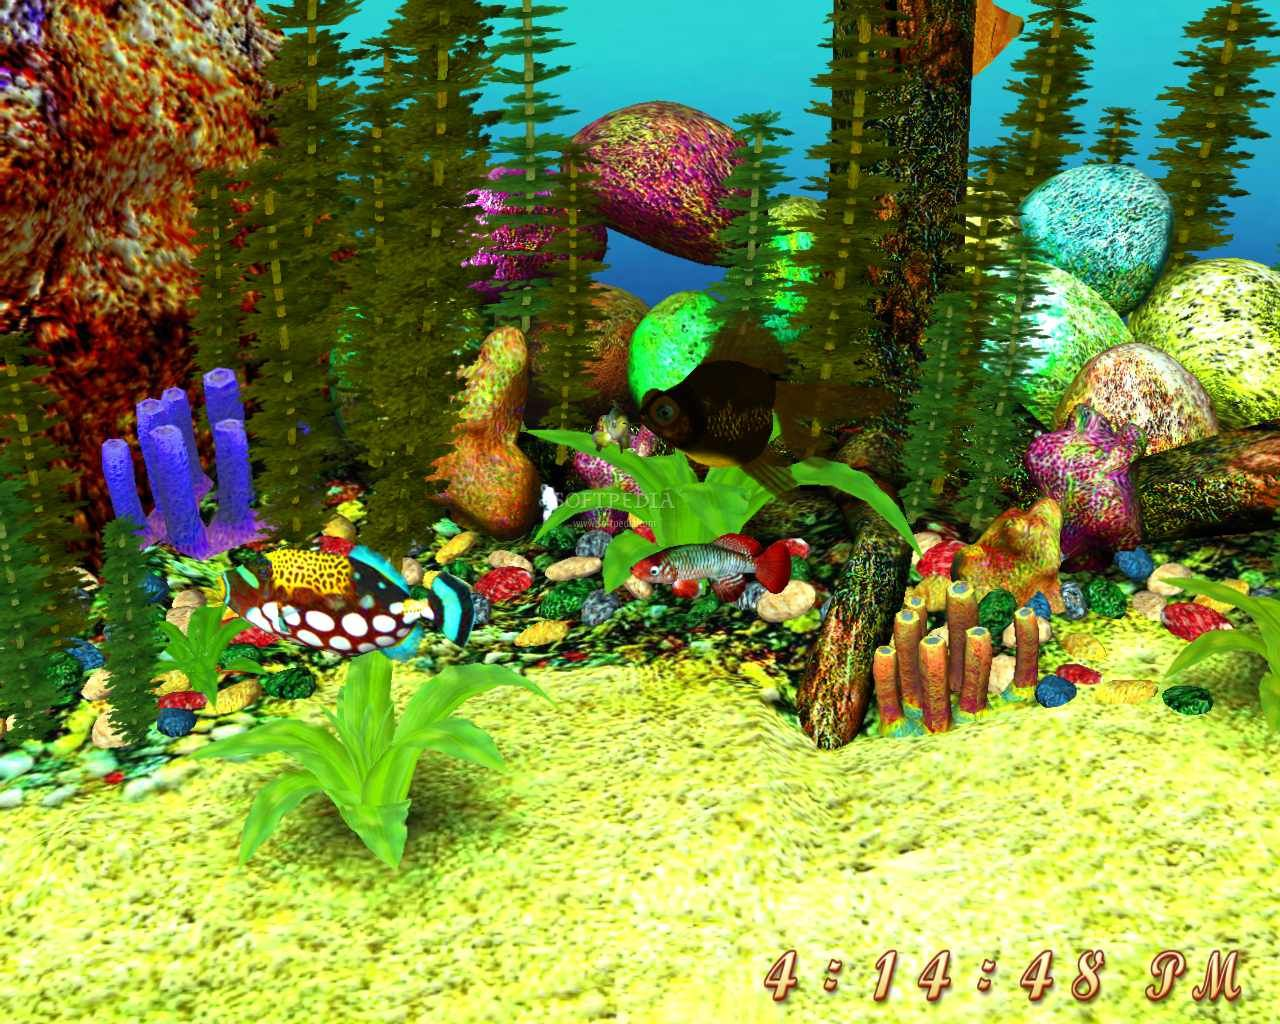 Fish in tank screensaver - Free Full Version 3d Screensavers Free 3d Aquarium Screensaver Screenshot 1 This Is The